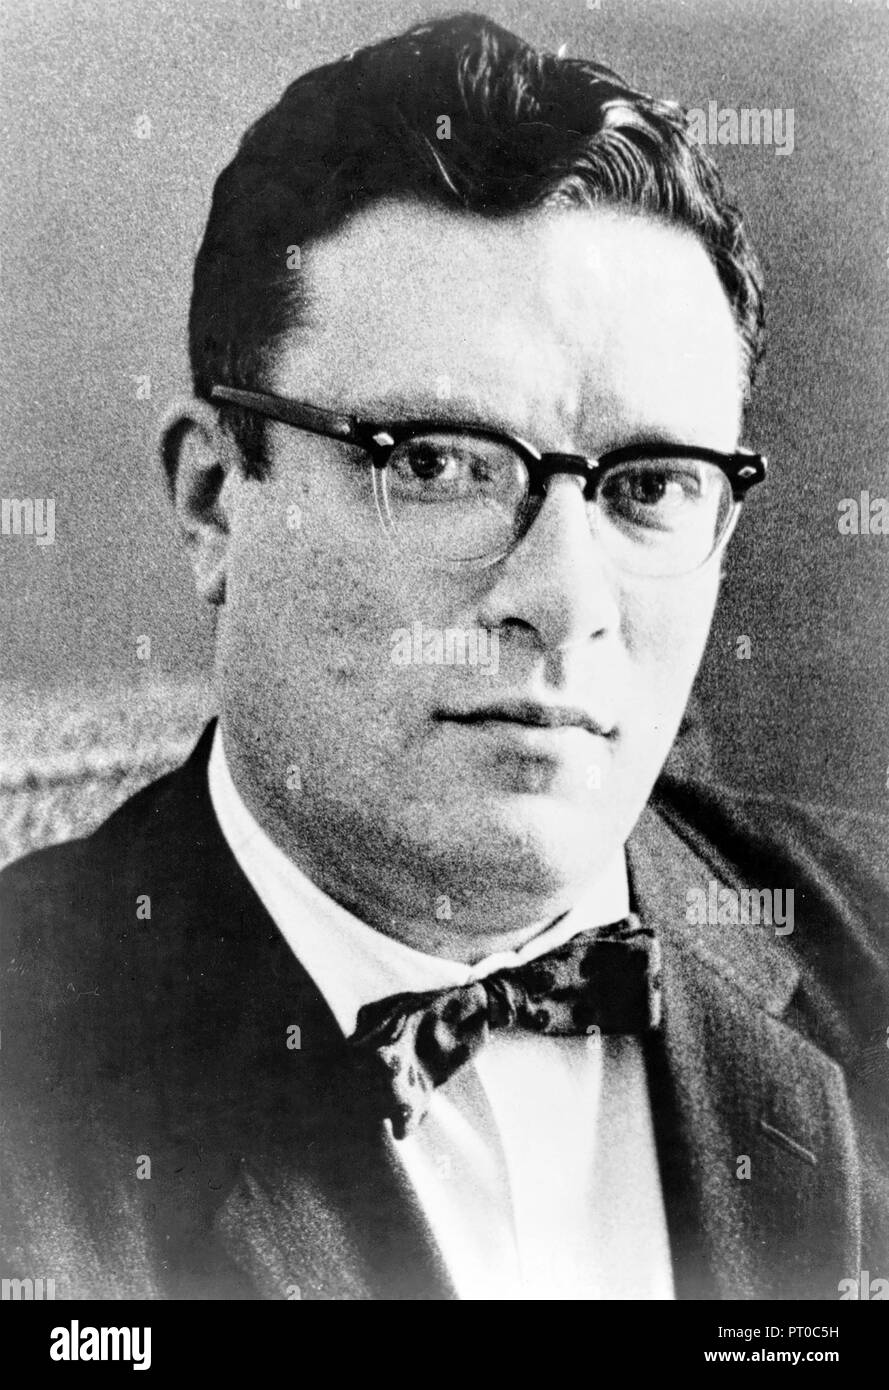 ISAAC ASIMOV (1920-1992) American science fiction writer and professor of biochemistry - Stock Image